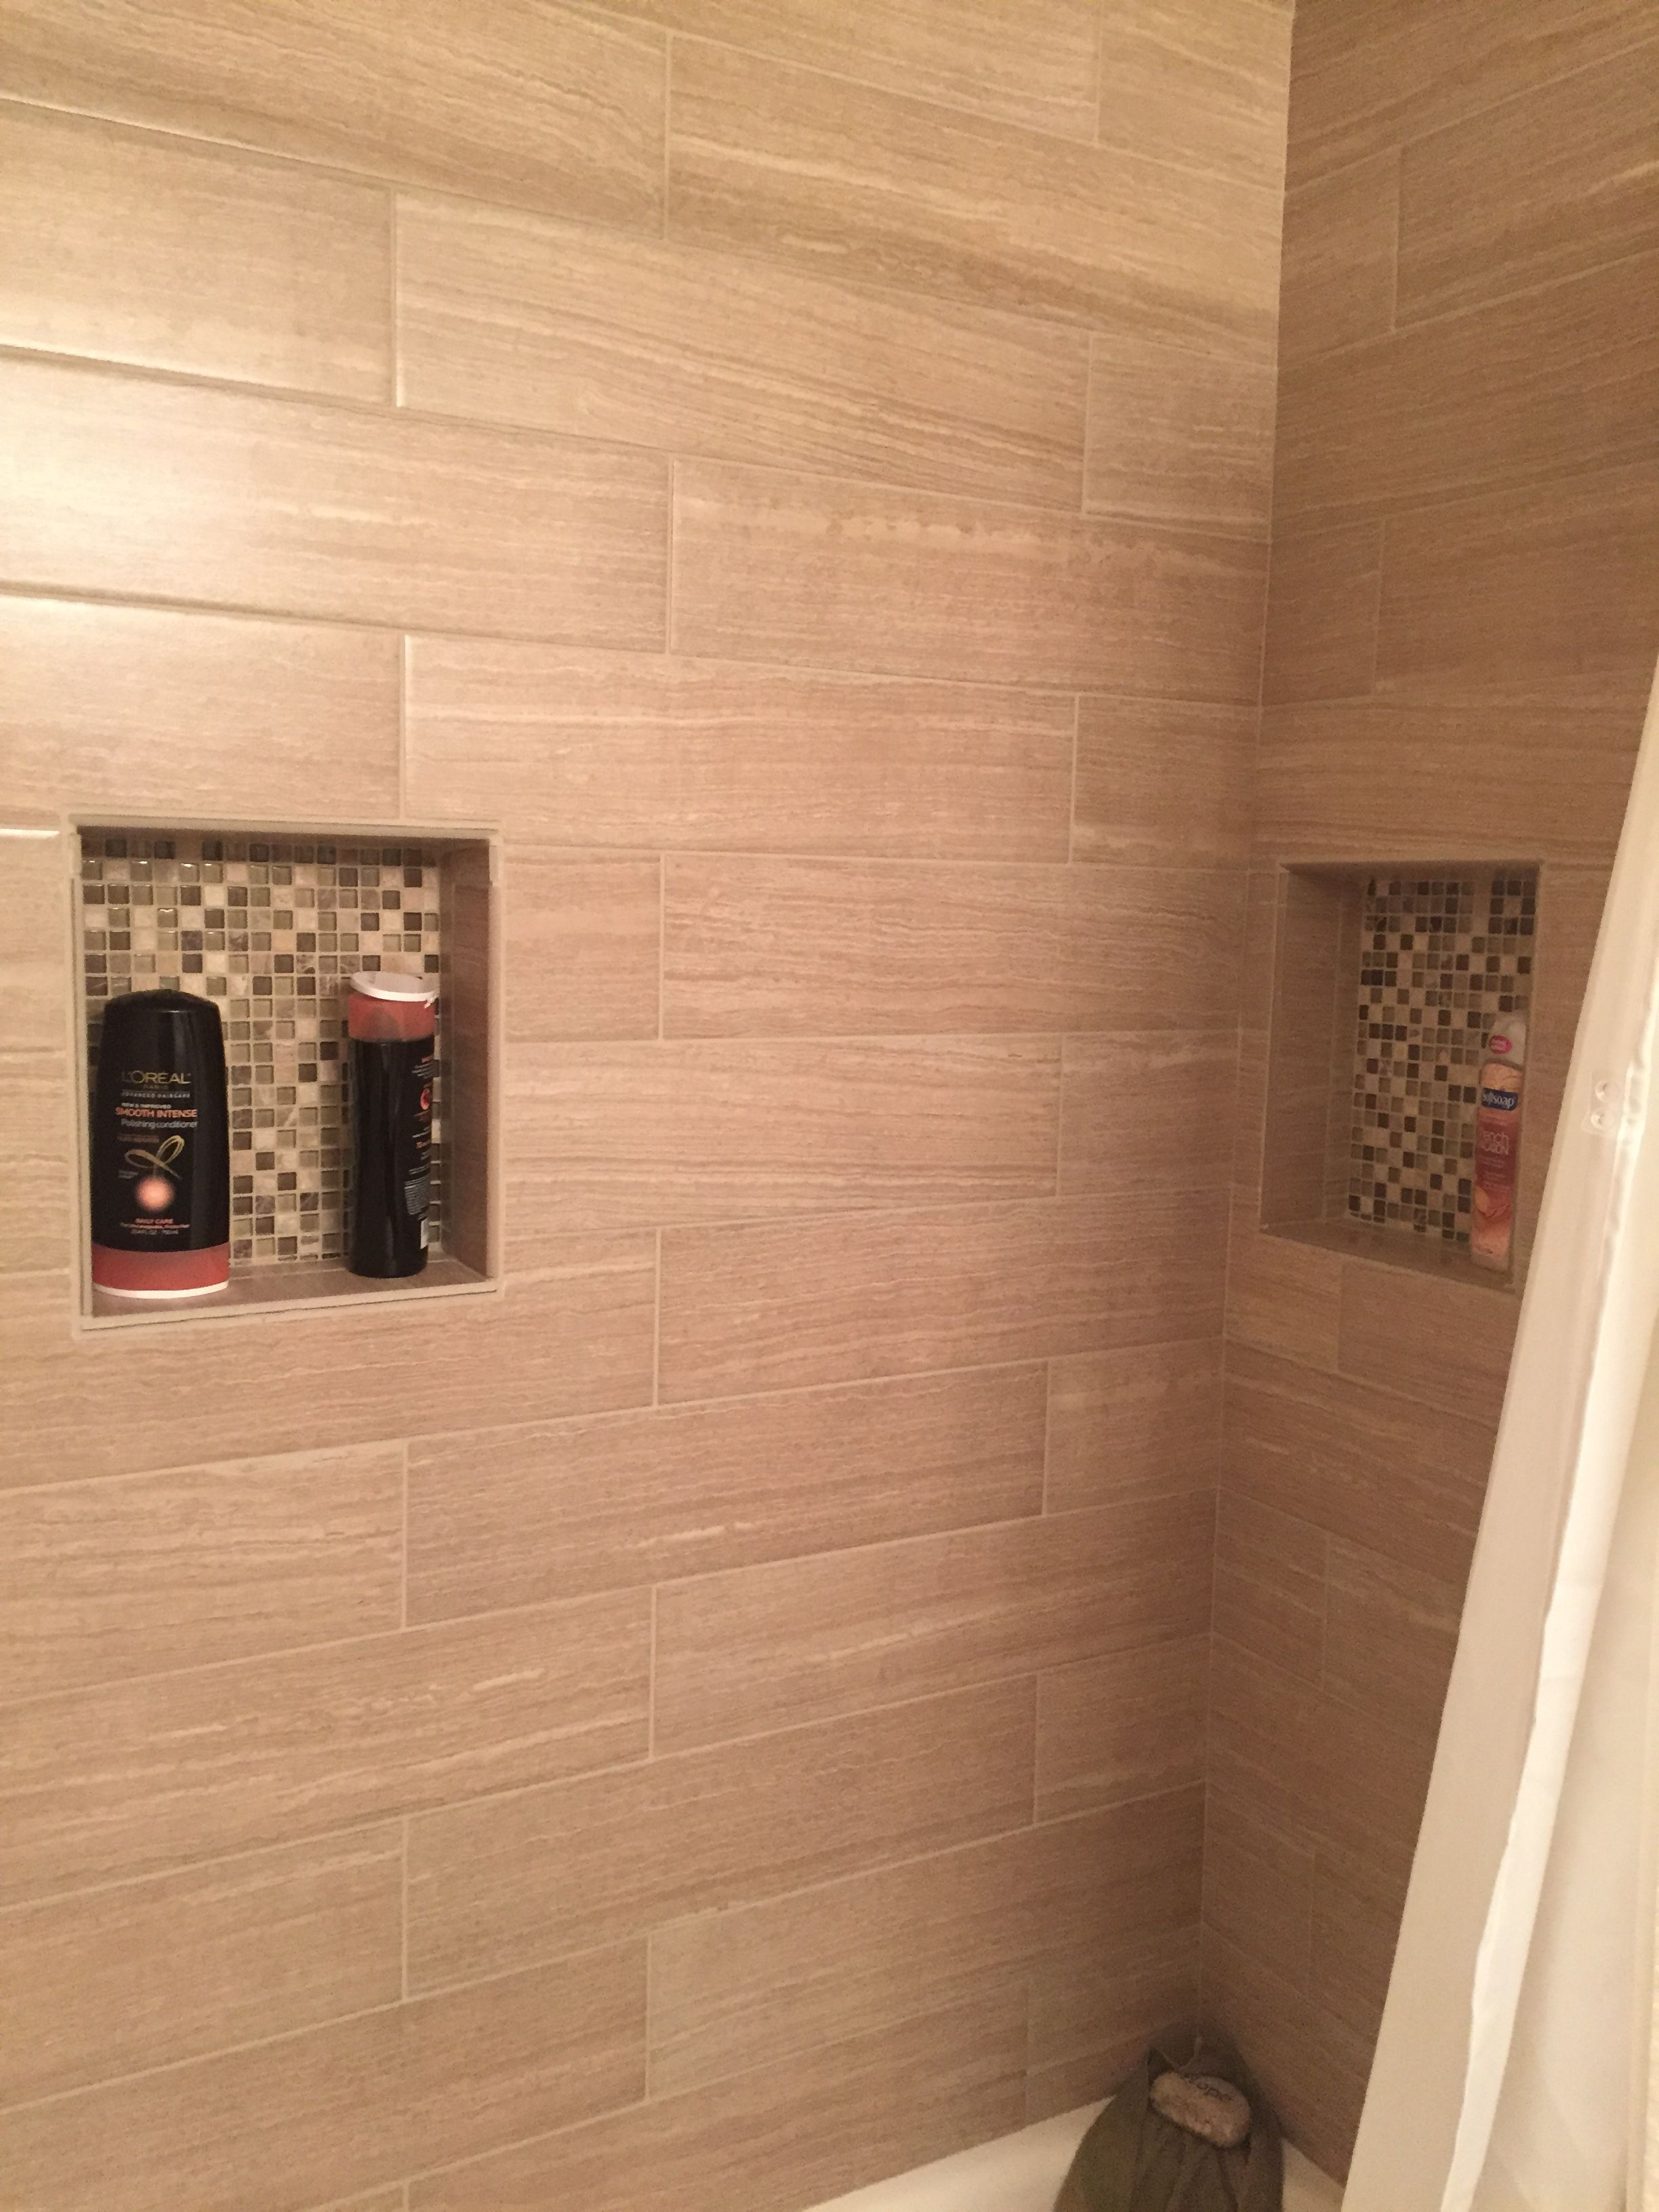 Leonia Sand Tile In Shower With Insets Quartzlock 2 Antique White Grout Lay Pattern Is 30